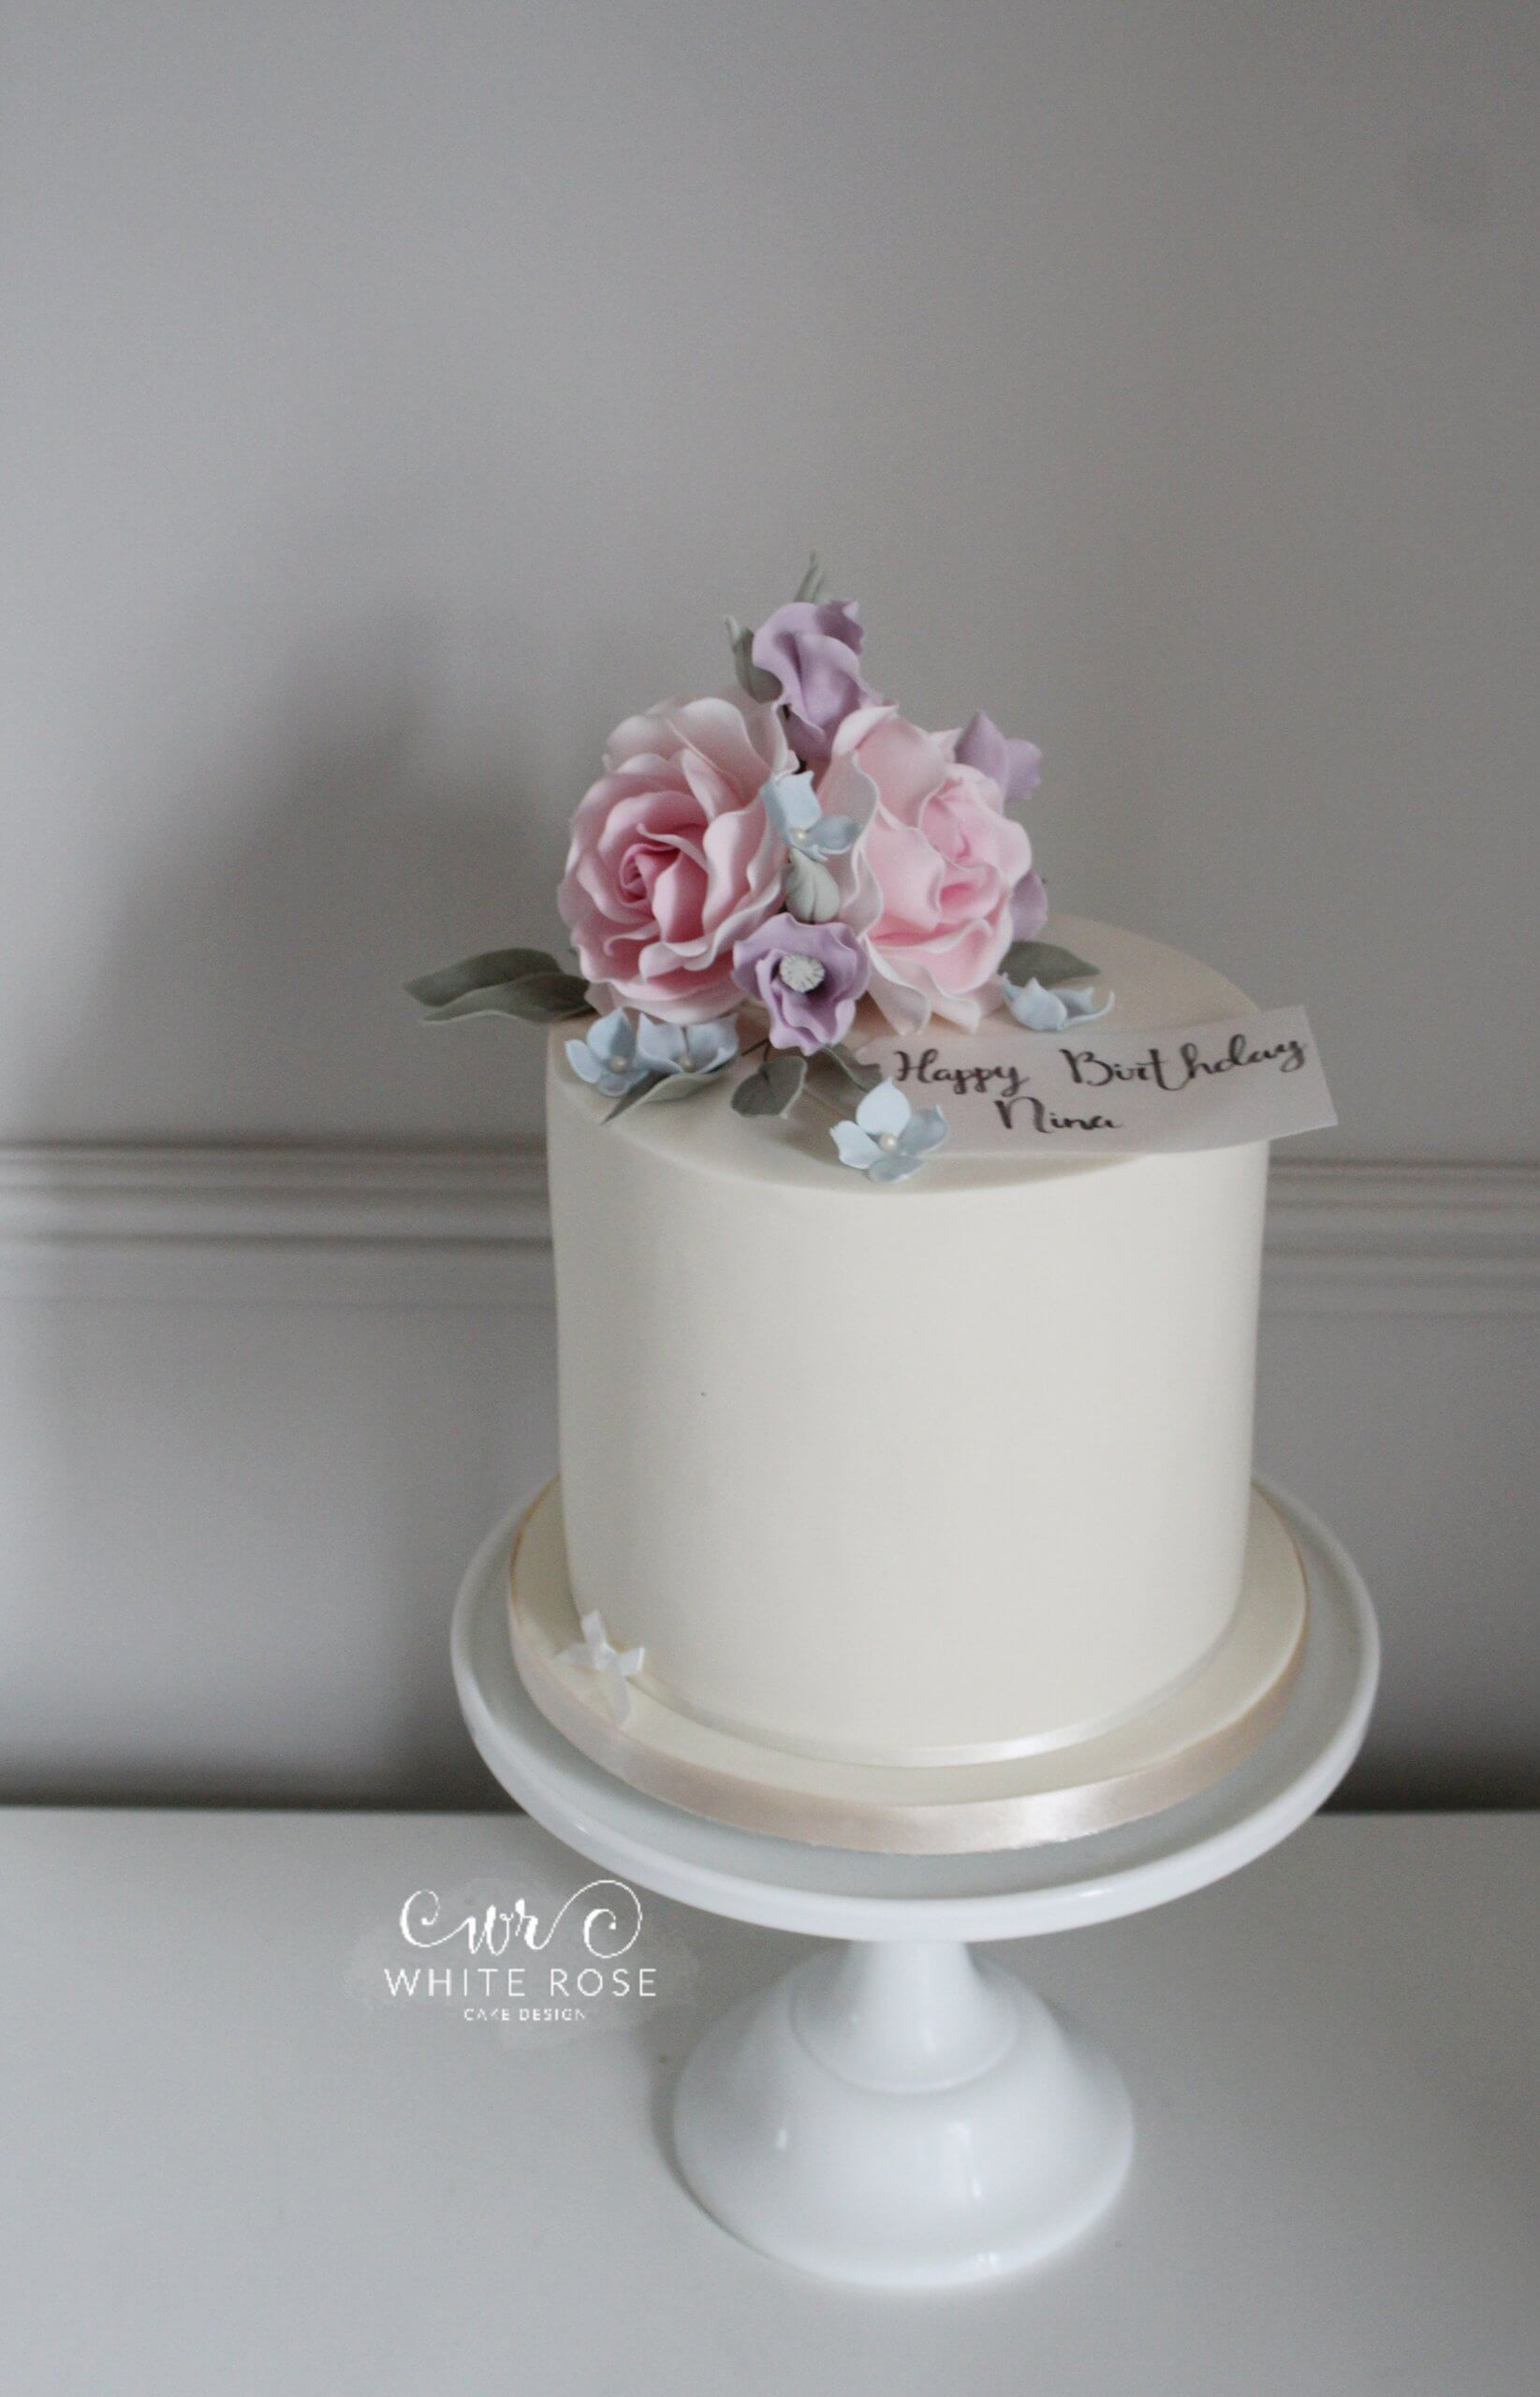 Floral Birthday Cake for 80th 60th 70th 50th Birthday by White Rose Cake Design Cake Maker in Holmfirth